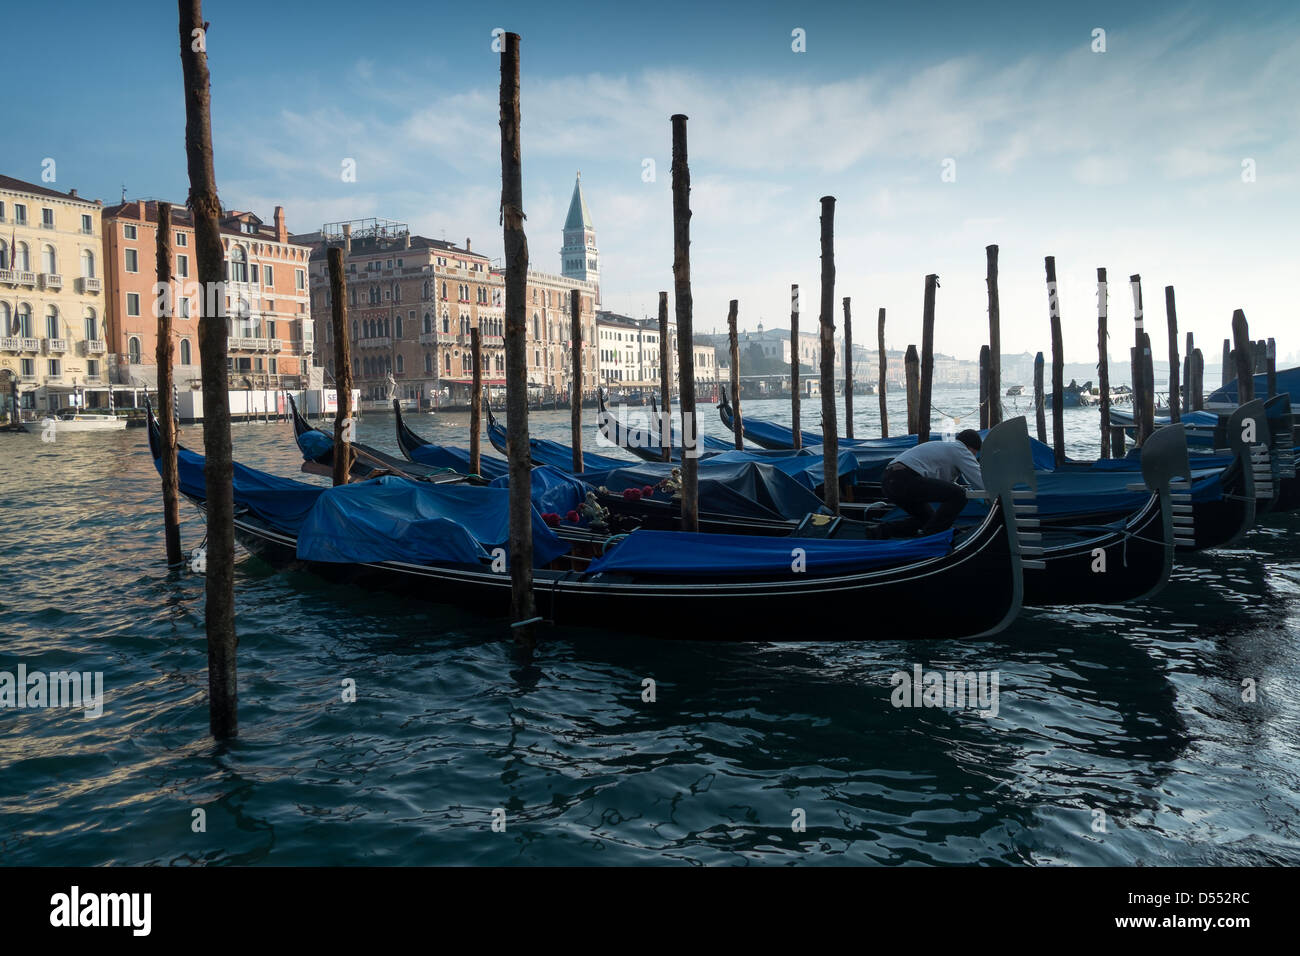 Gondolas moored at the entrance to the Grand Canal, Venice, Italy - Stock Image